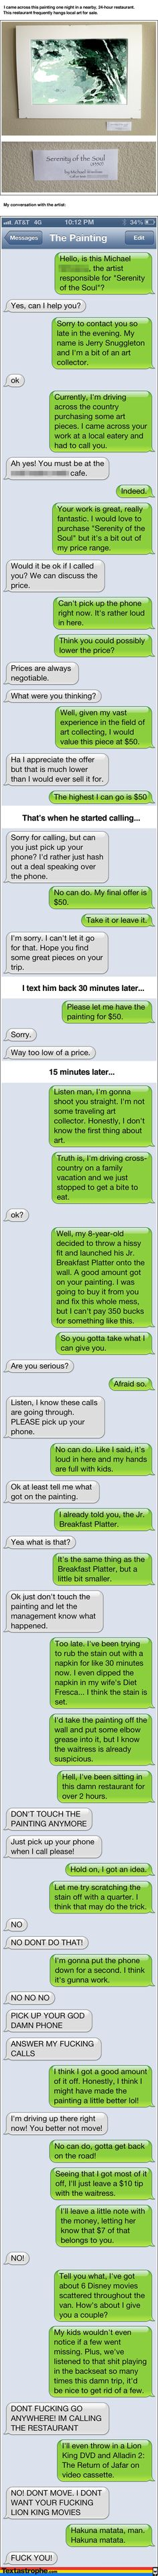 Textastrophe. This is hilarious. The site finds phone numbers people leave on flyers and such and then texts them. Seriously, go check out this site. It will make your day!